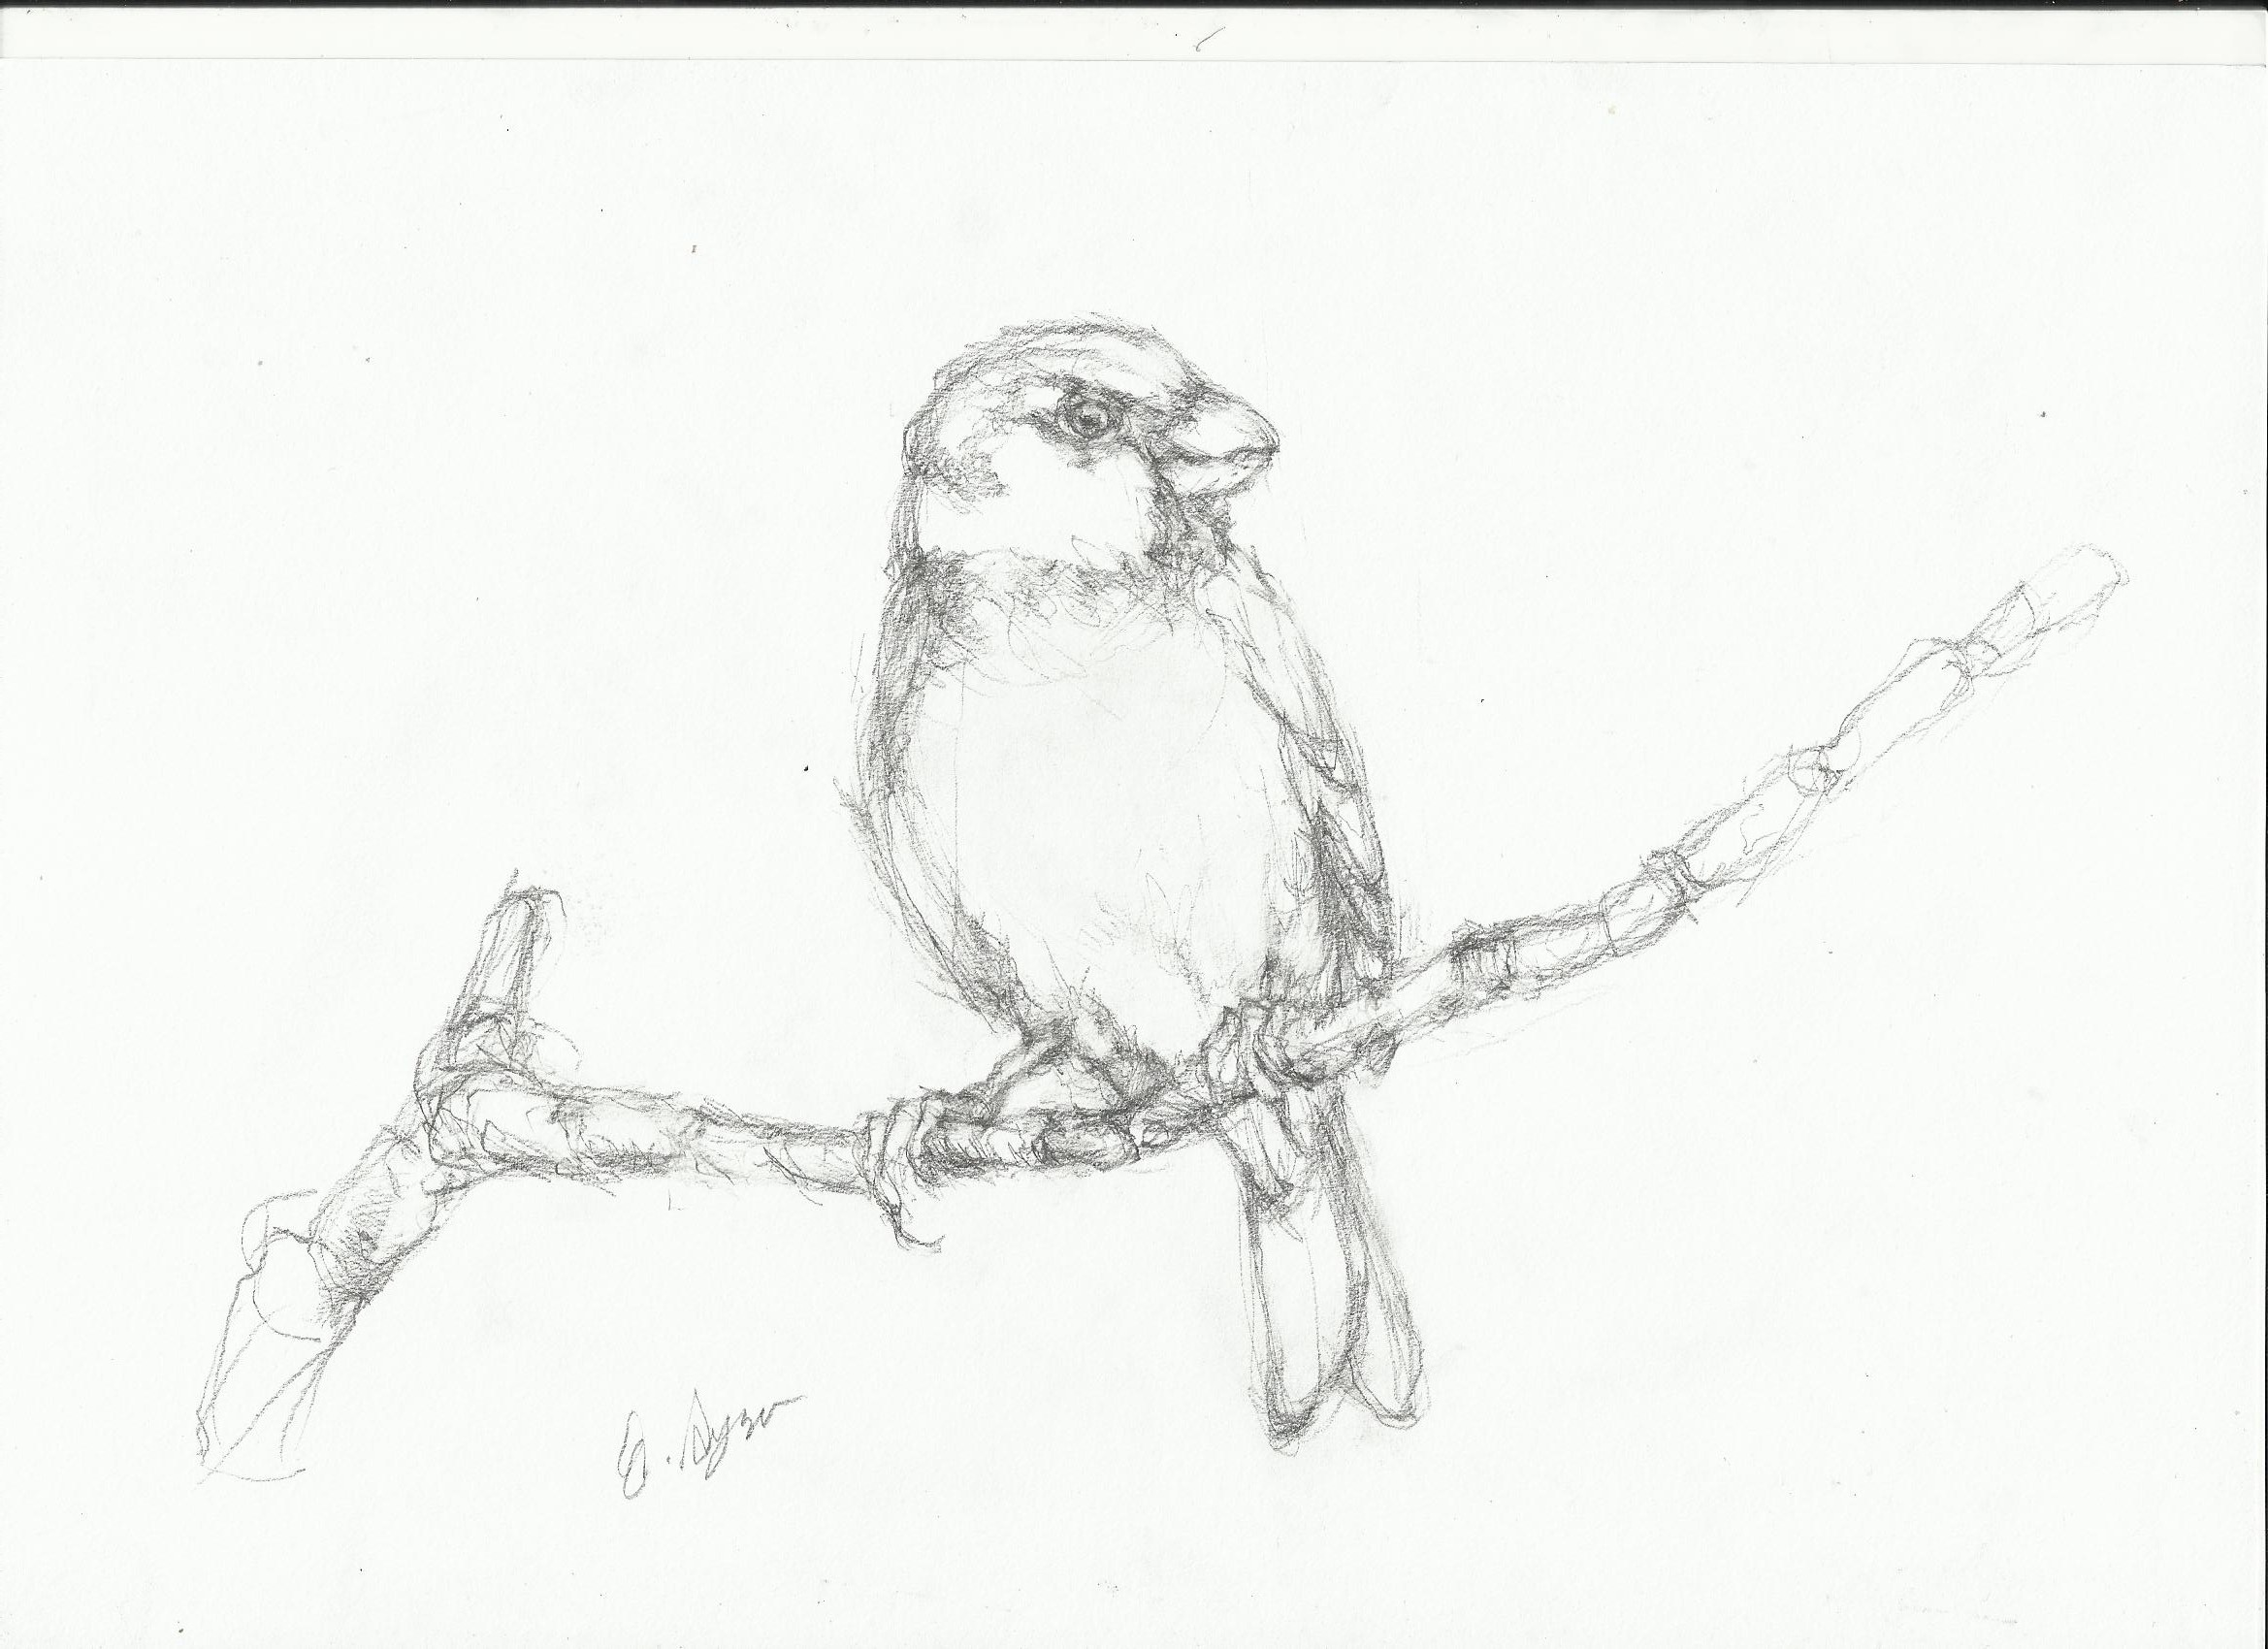 2338x1700 Bird Drawing Nightwithdeer Page 2